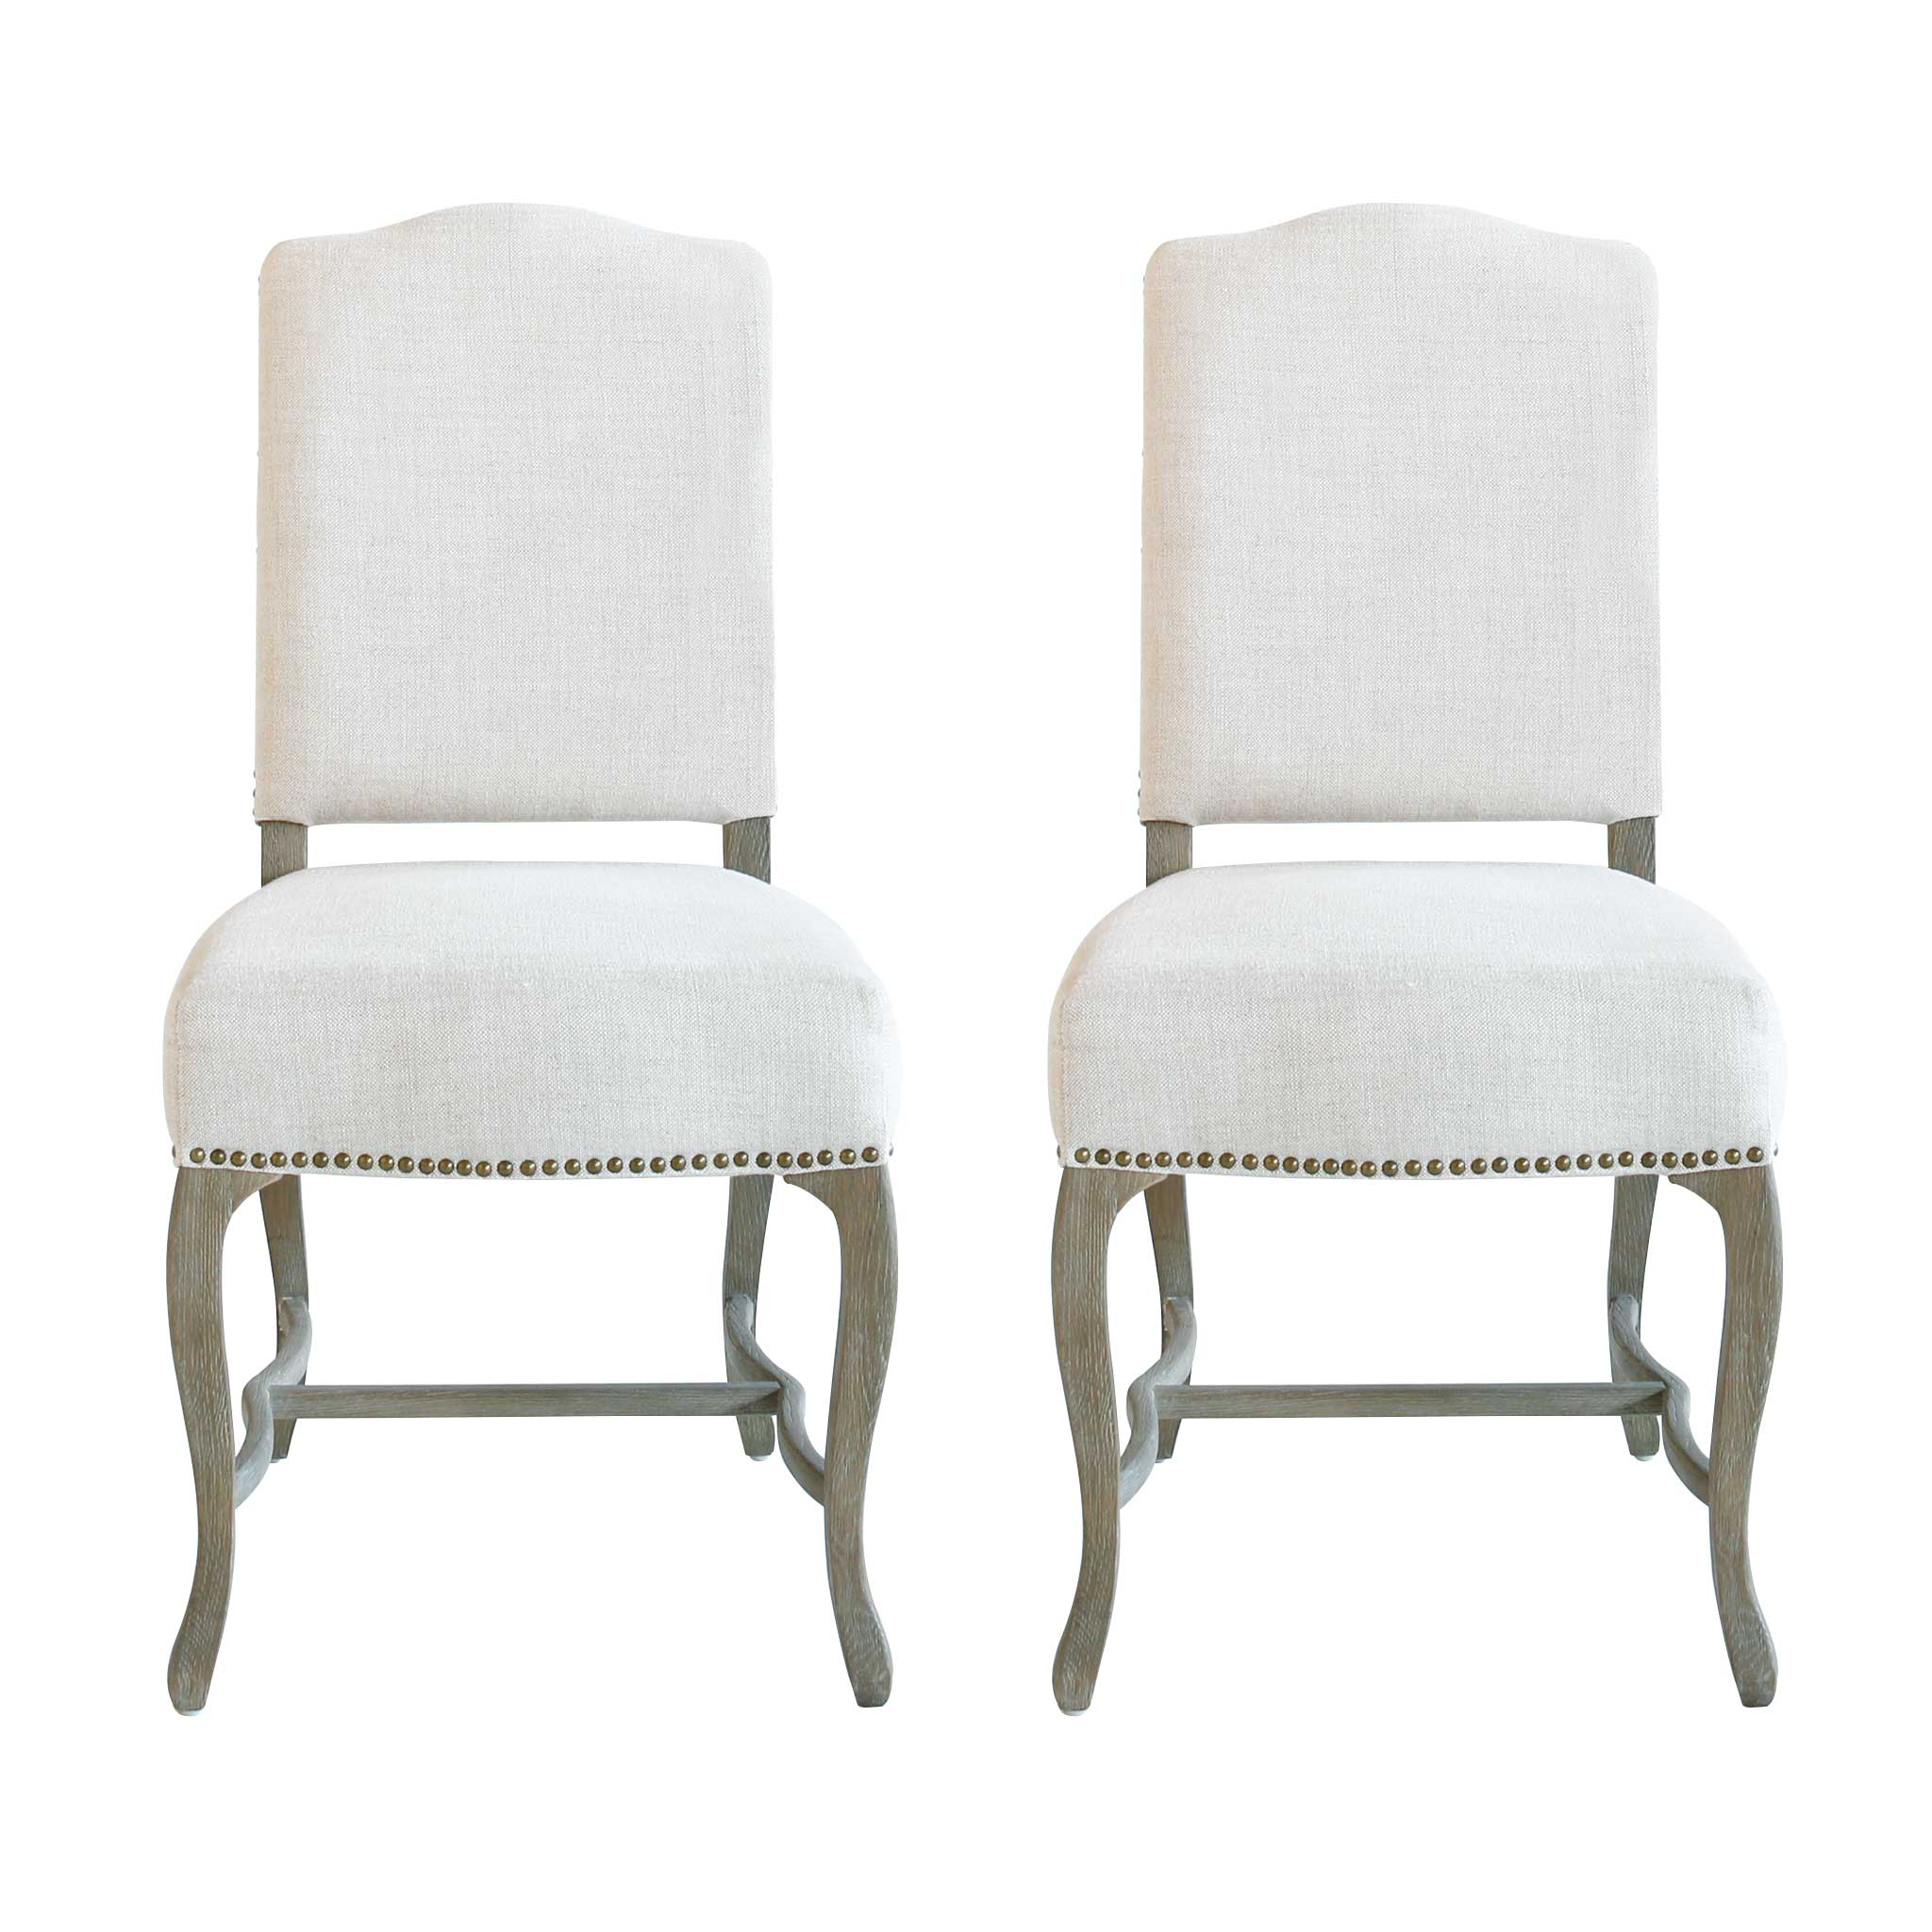 Studded Dining Chairs Set Of 2 Candide Oak Studded Dining Chair